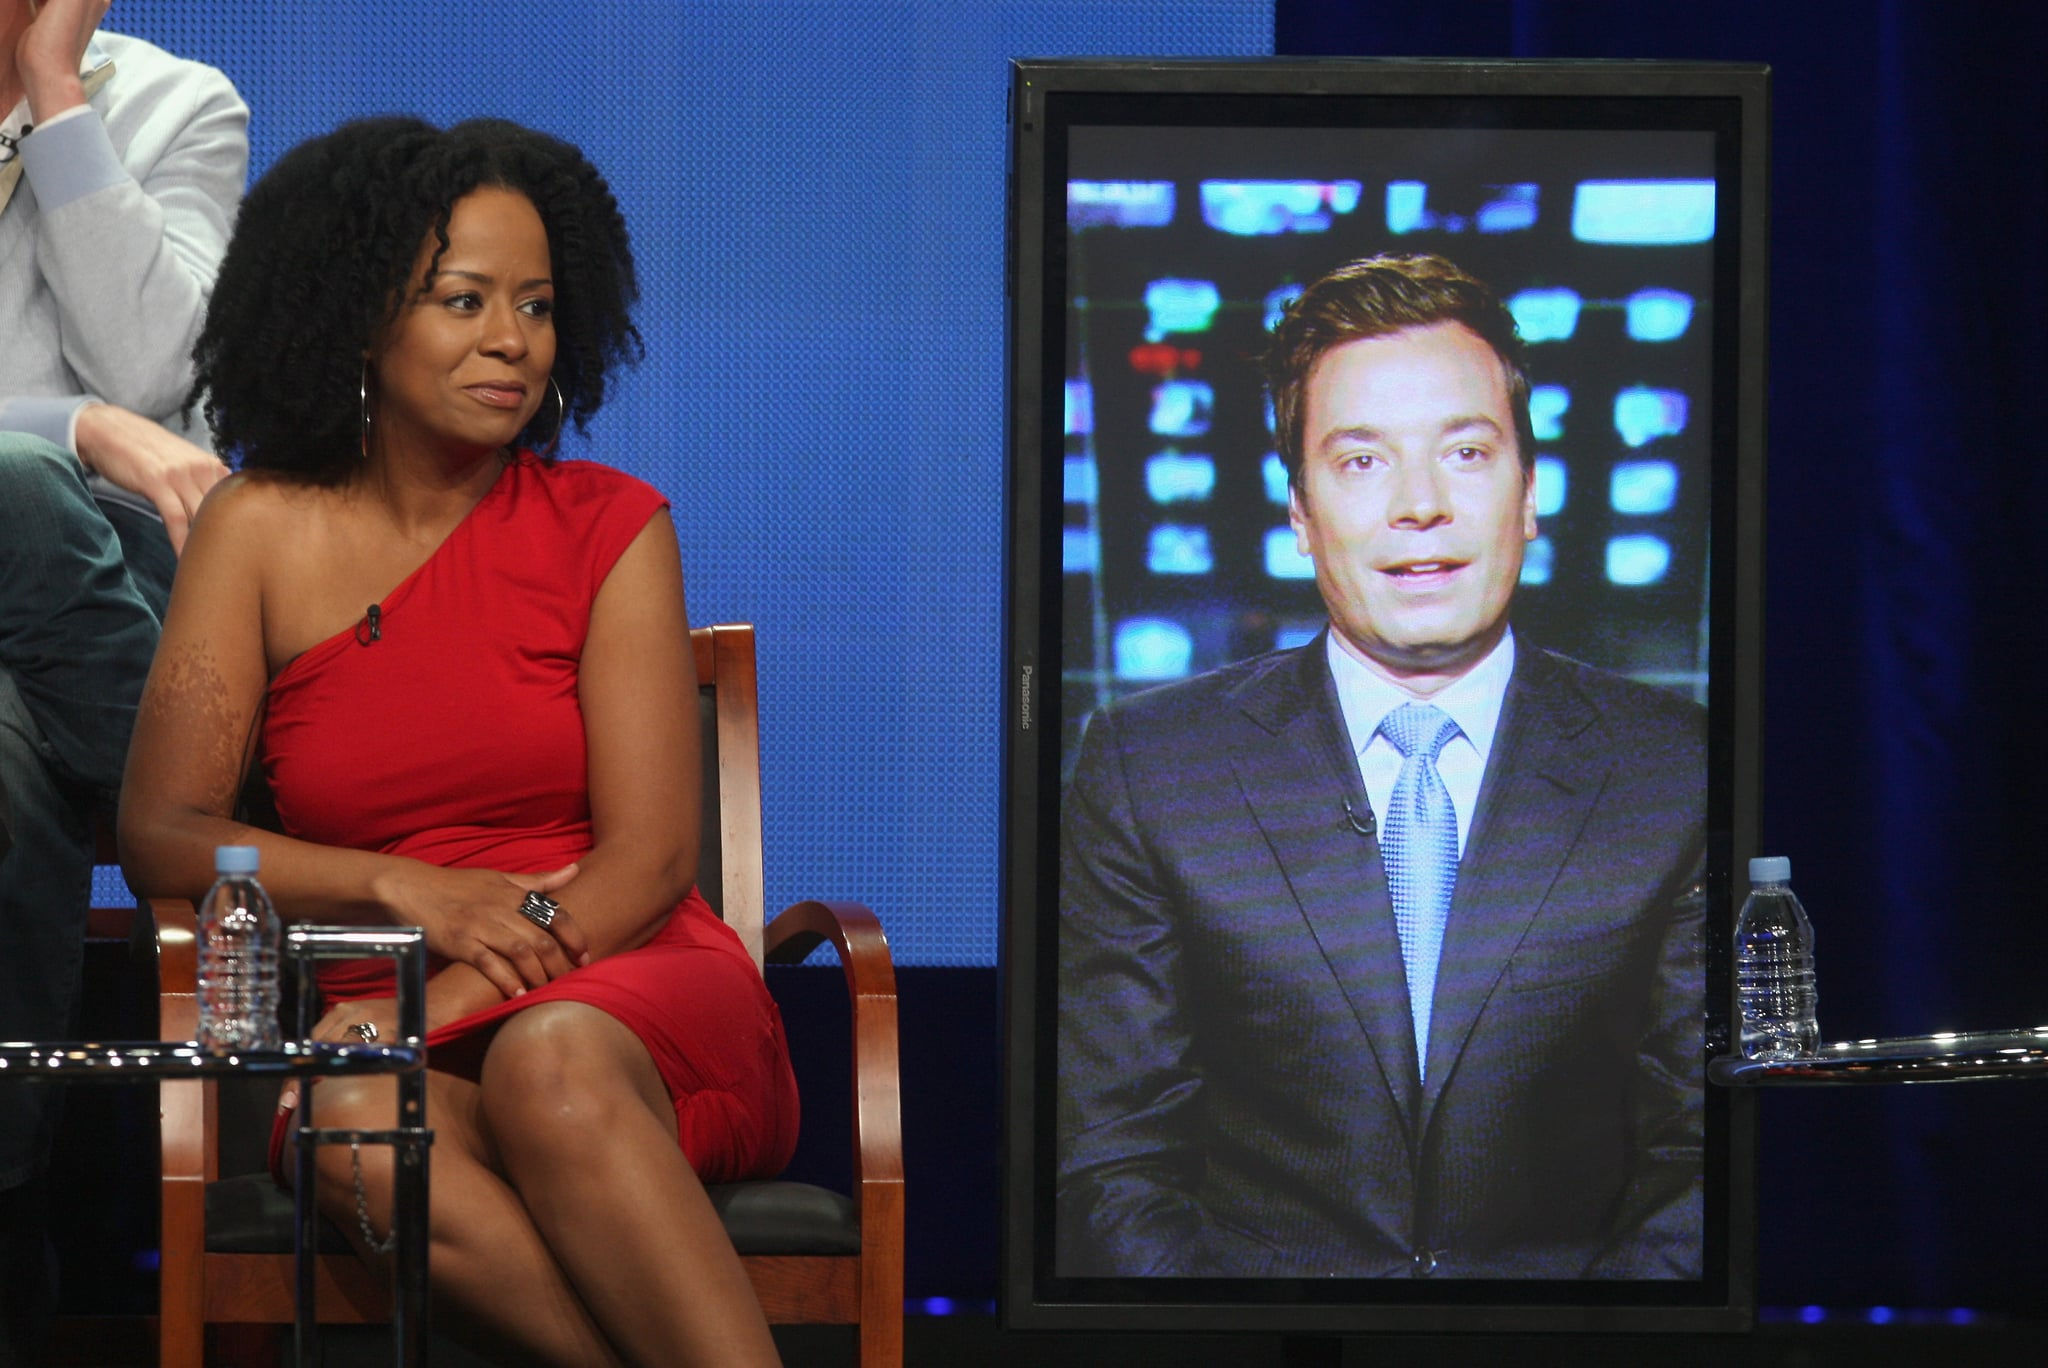 Guys With Kids executive producer Jimmy Fallon joined the cast via satellite from New York.